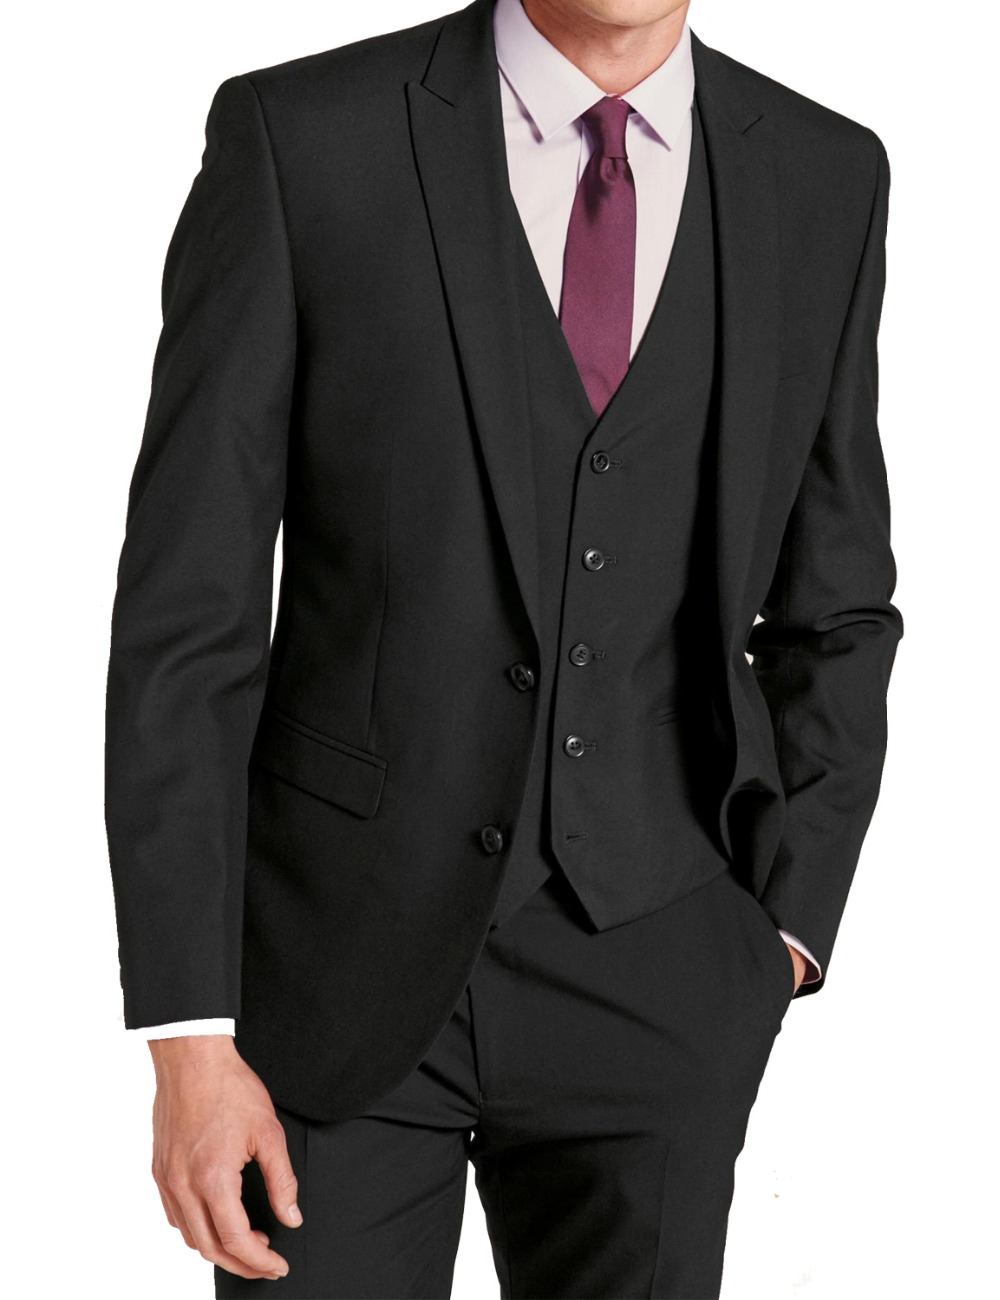 Mens 3 Piece 2 Button Flat Collar Skinny Black Suits For Big Event With Modern Designed Business New Arrival Men Suits